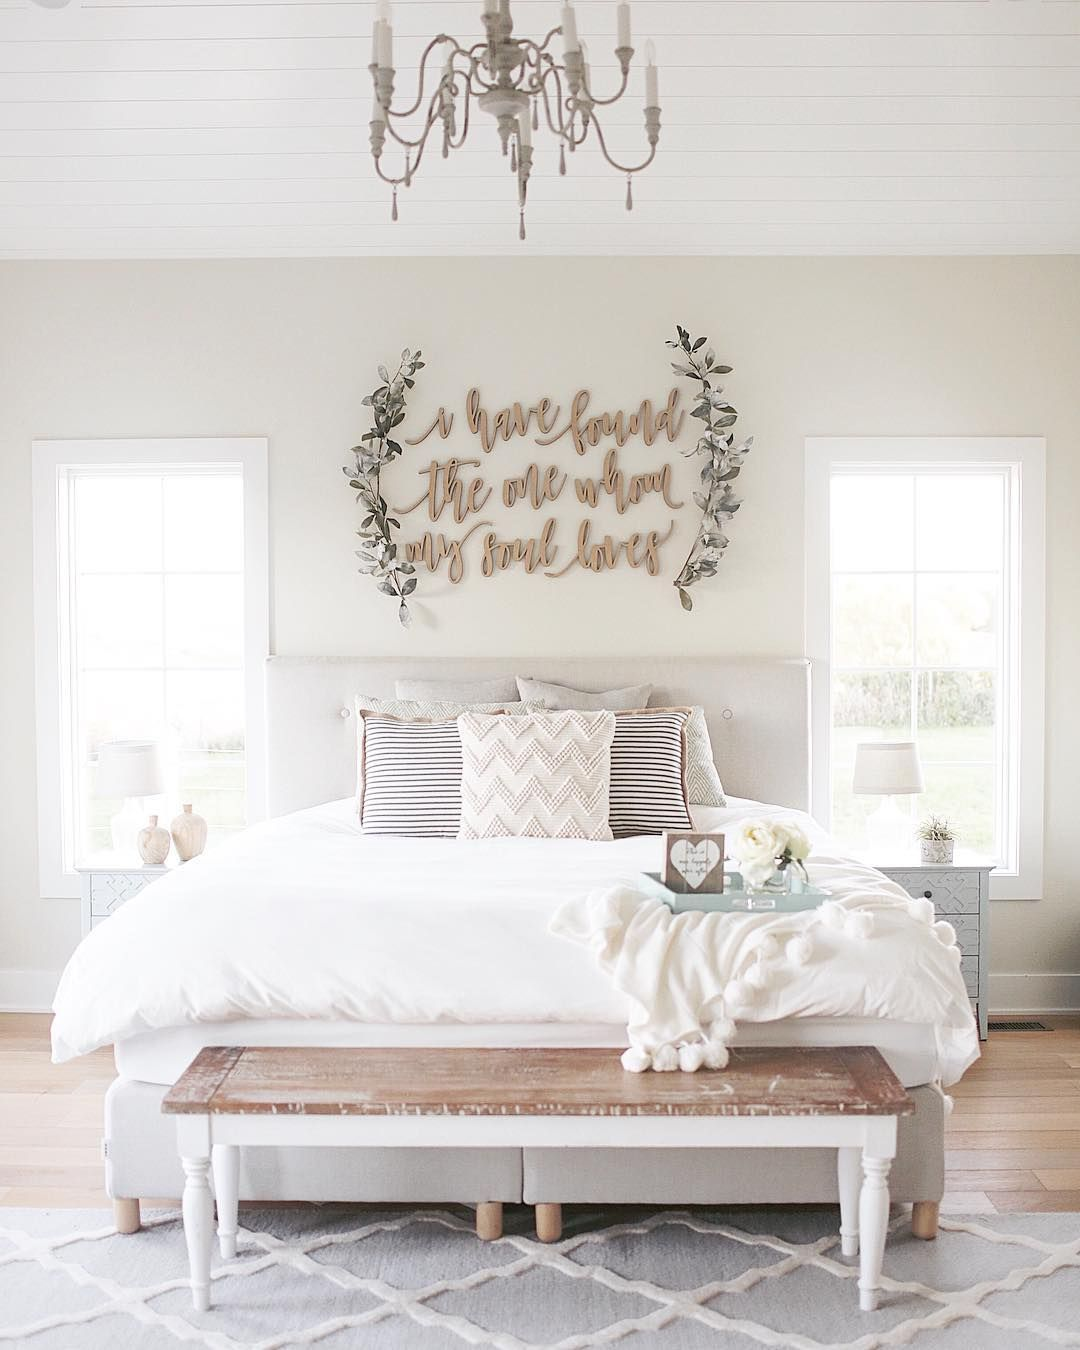 Unique Master Bedroom Decorating Ideas Wall Art Ideas For Bedroom Pinterest Bedroom Tapestry Luxury Black Bedroom: Farmhouse Coastal Master Bedroom Wall Decor